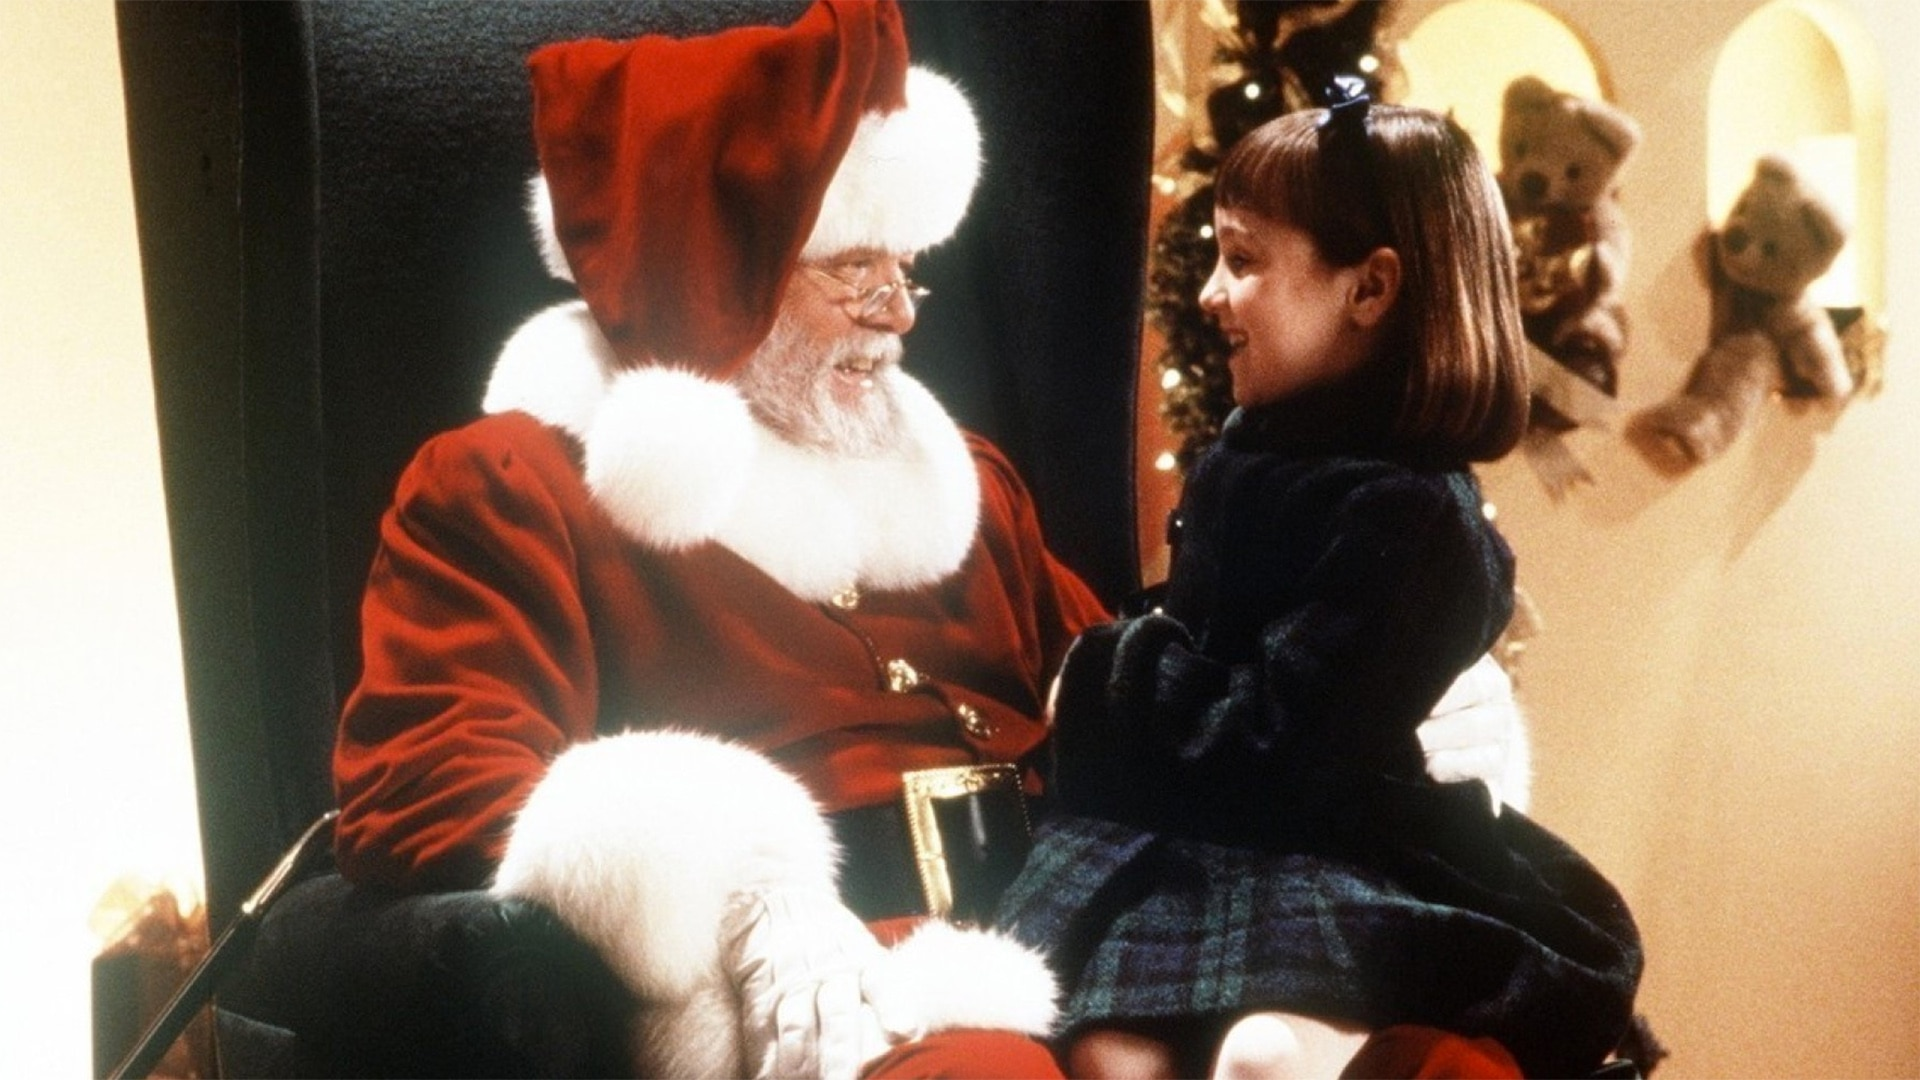 Miracle on 34th Street (1994) - All 4